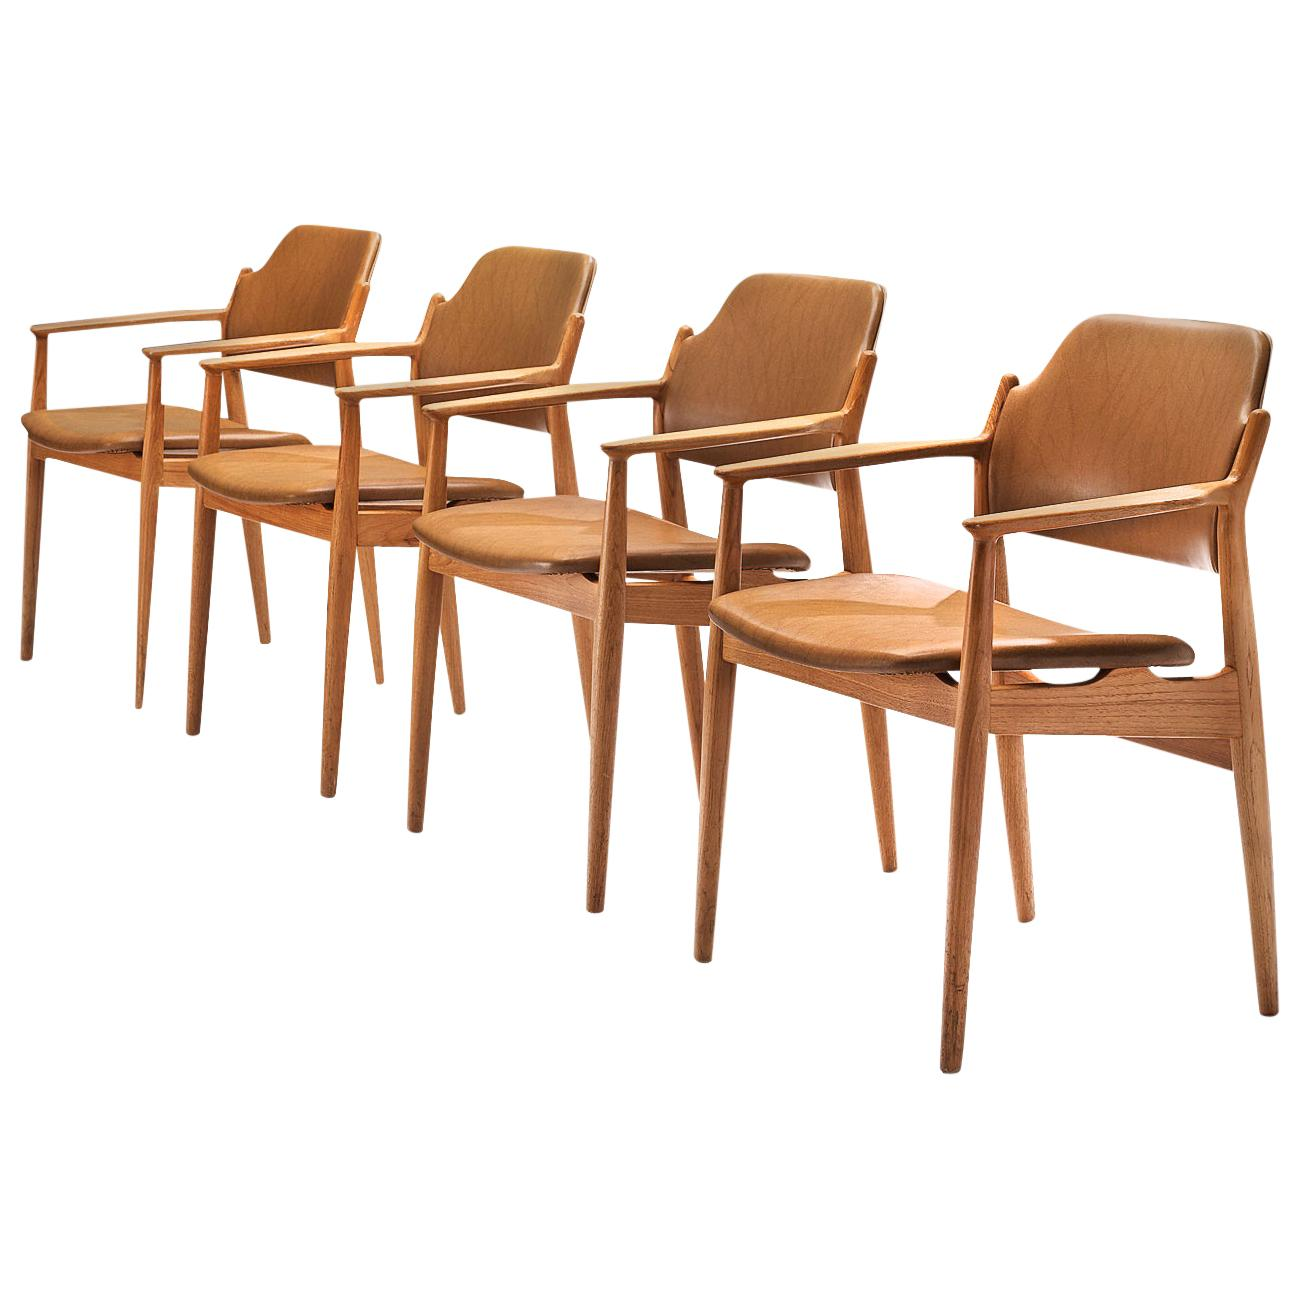 Arne Vodder for Sibast Armchairs in Oak and Leatherette